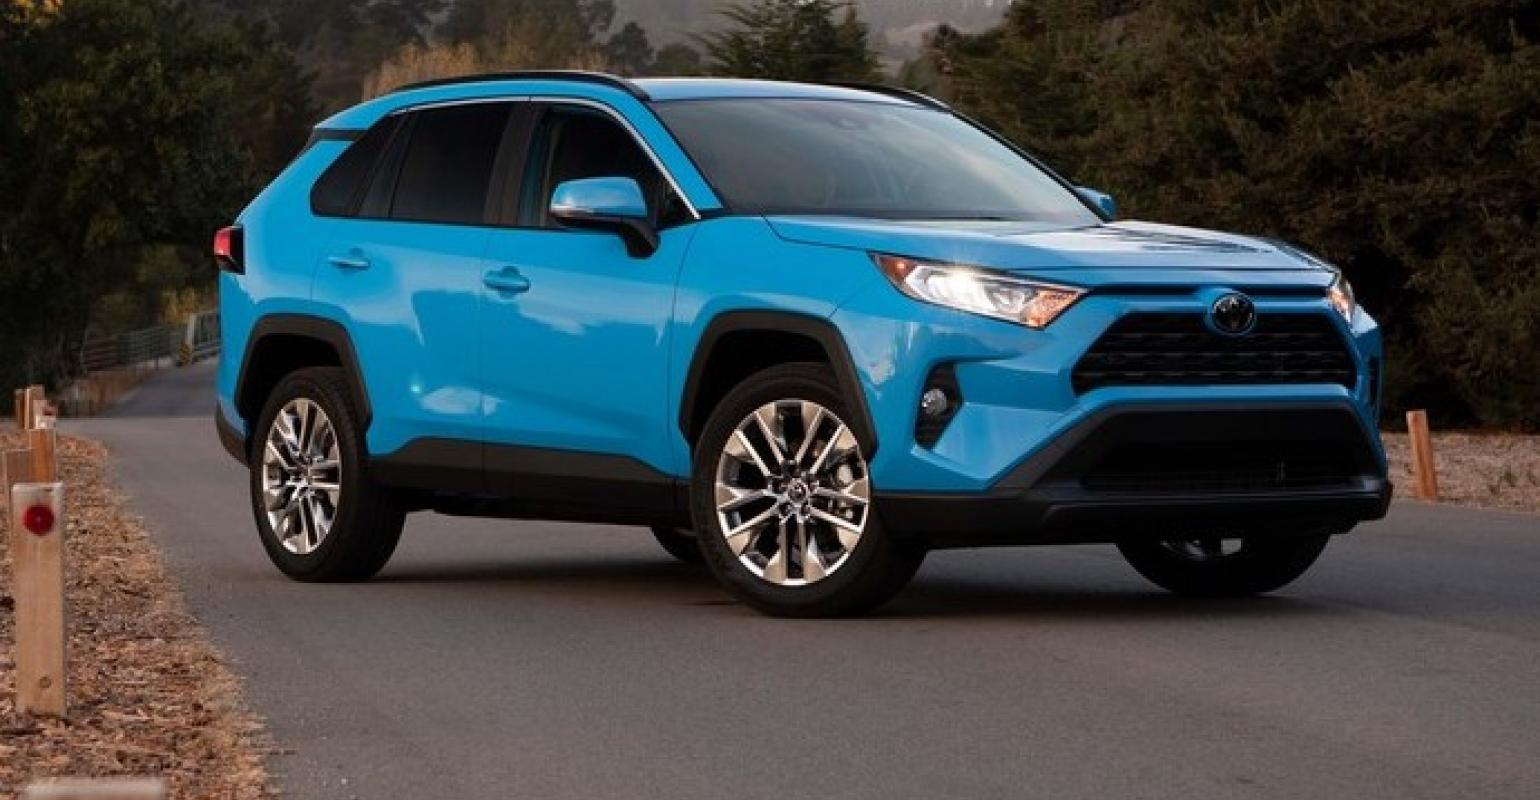 2019 Toyota Rav4 Compact Suv Has More Verve And Variety